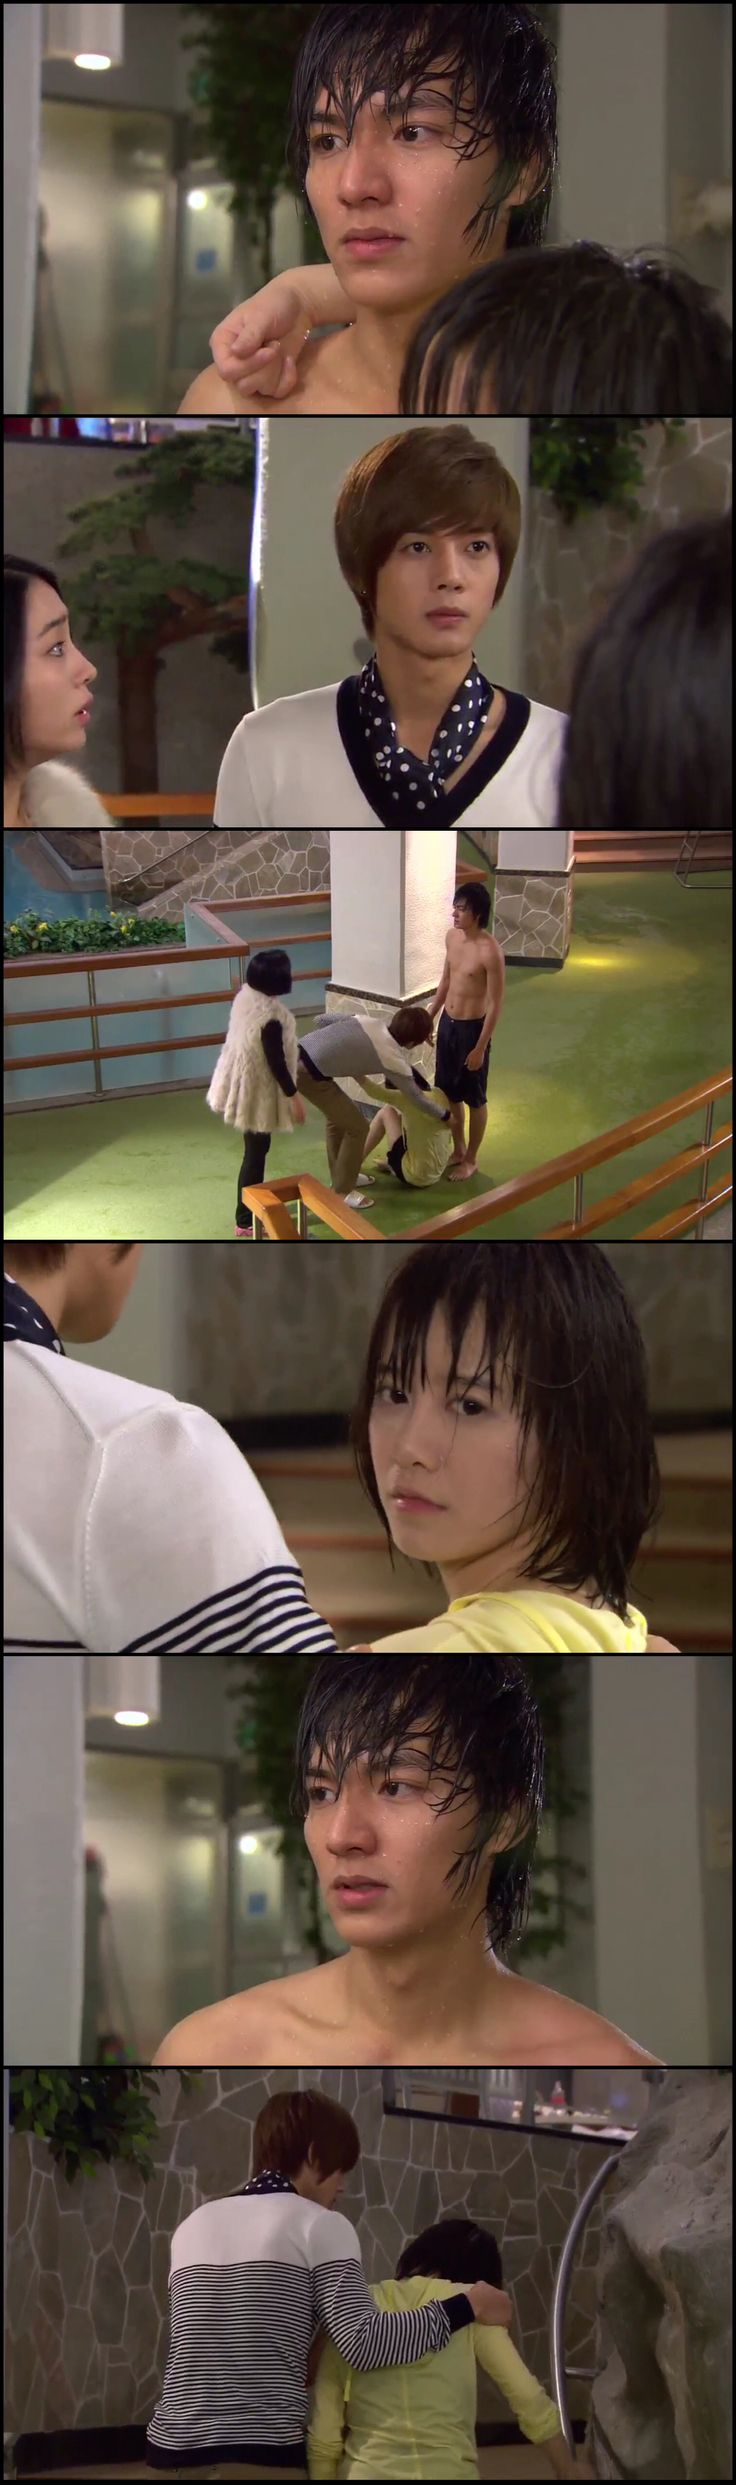 Pin by Brielle Morgan on Boys Over Flowers | Pinterest